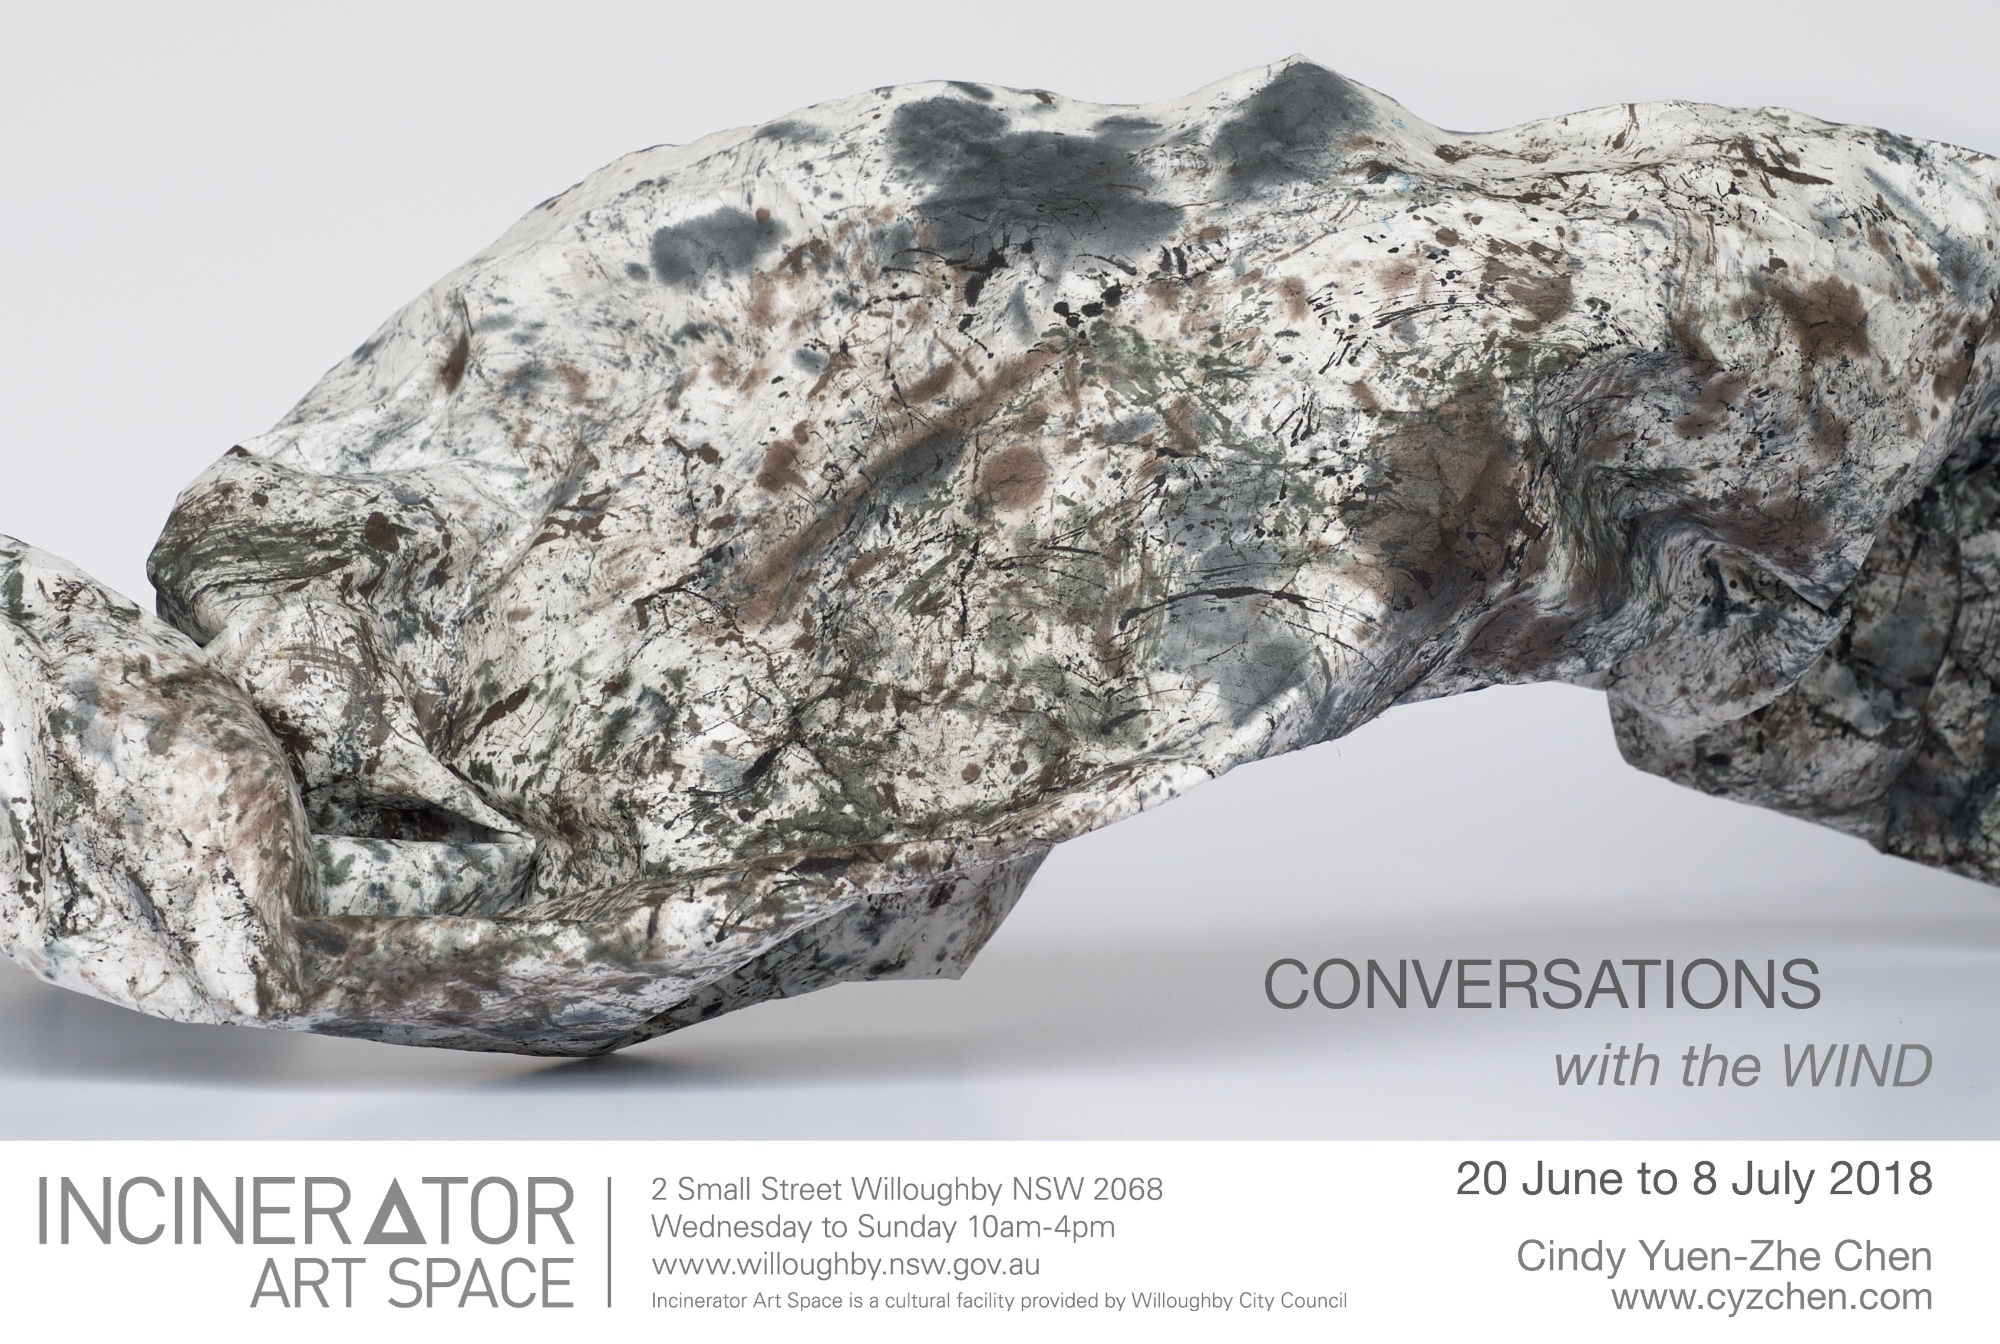 Conversations with the Wind - Cindy Yuen-Zhe Chen's exhibition of experimental drawings, video and sound installations.JUNE 20 to JULY 8.Opening Event: Saturday 23rd June 2-5pmDrawing Feedback performance at 3:30pm.